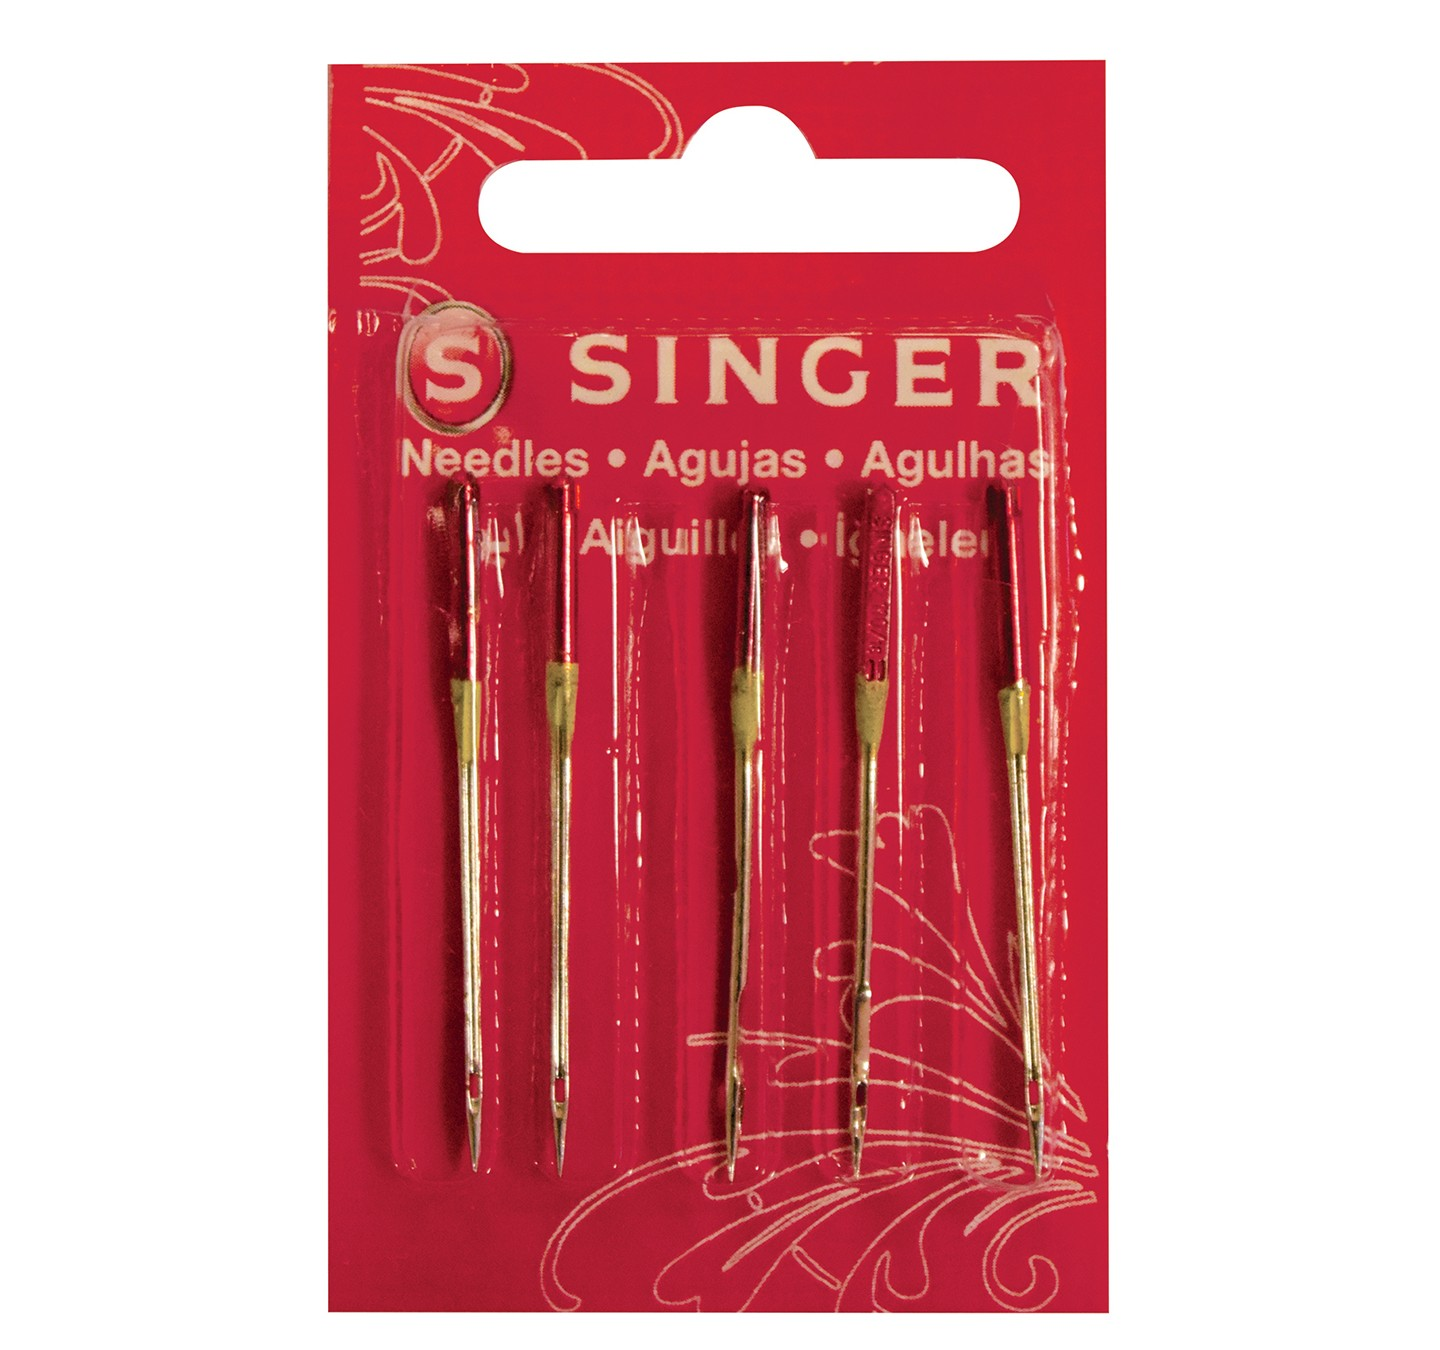 SINGER 2020 - 11 SEWING NEEDLE